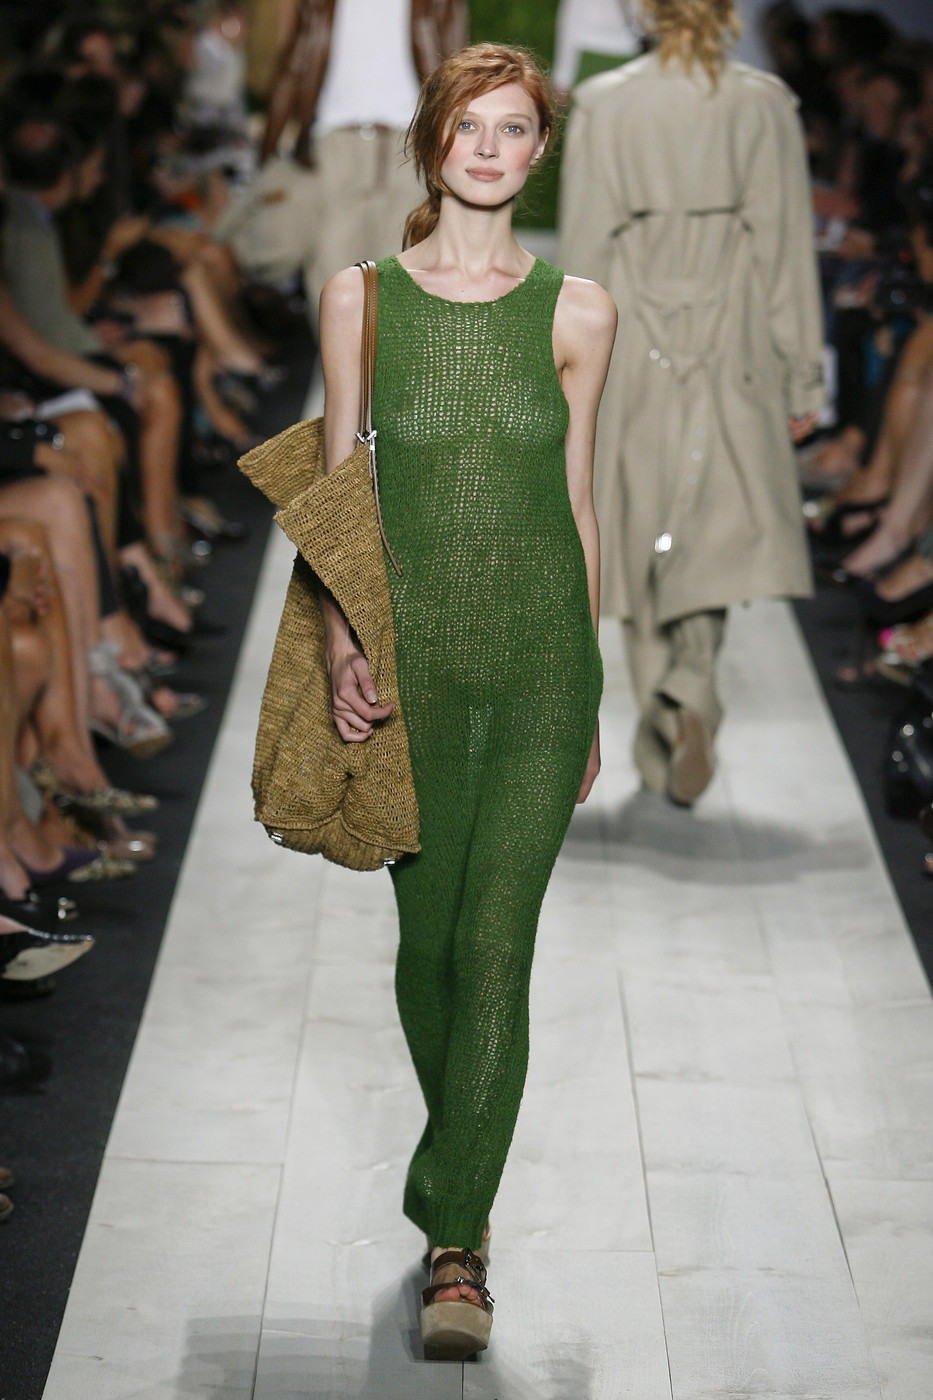 via fashioned by love | Michael Kors Spring/Summer 2011 | green